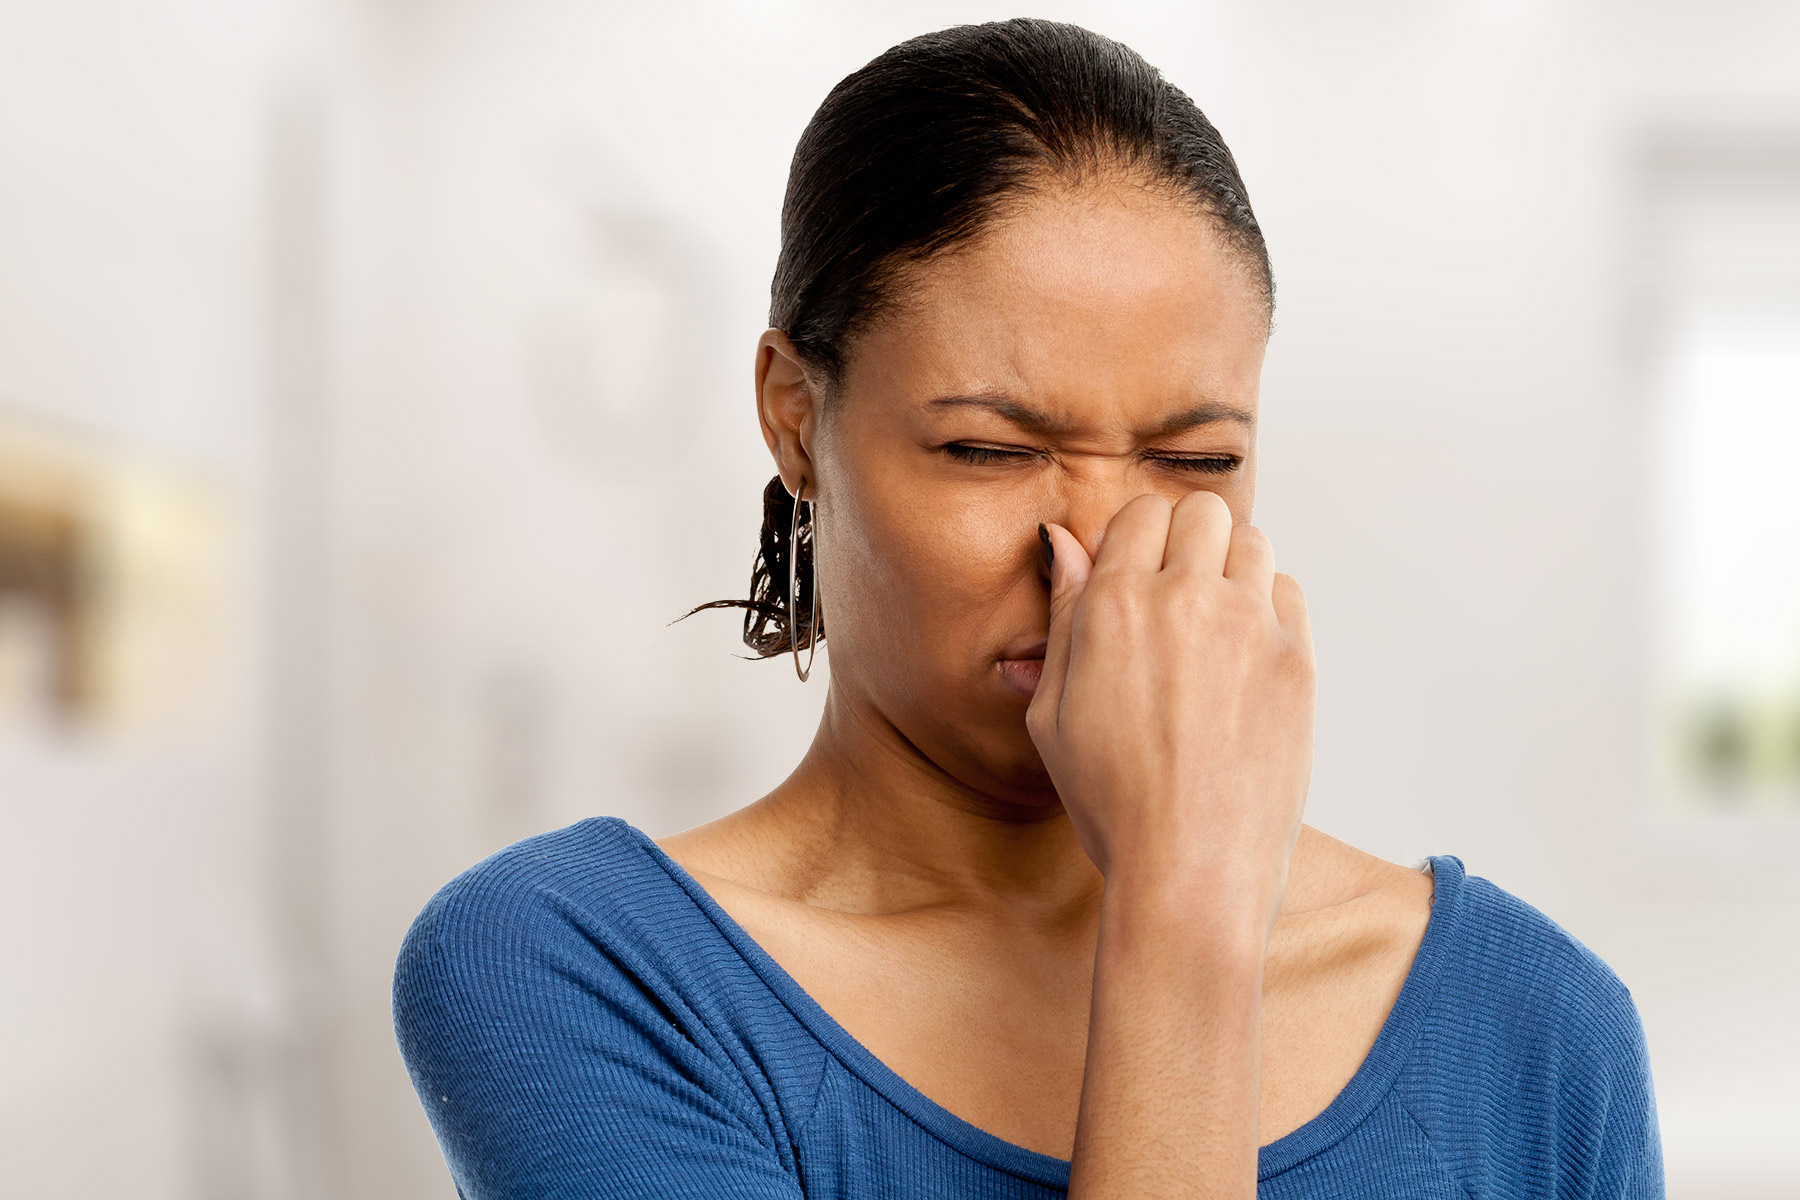 Do Not Ignore These 4 Strange Smells in Your Home